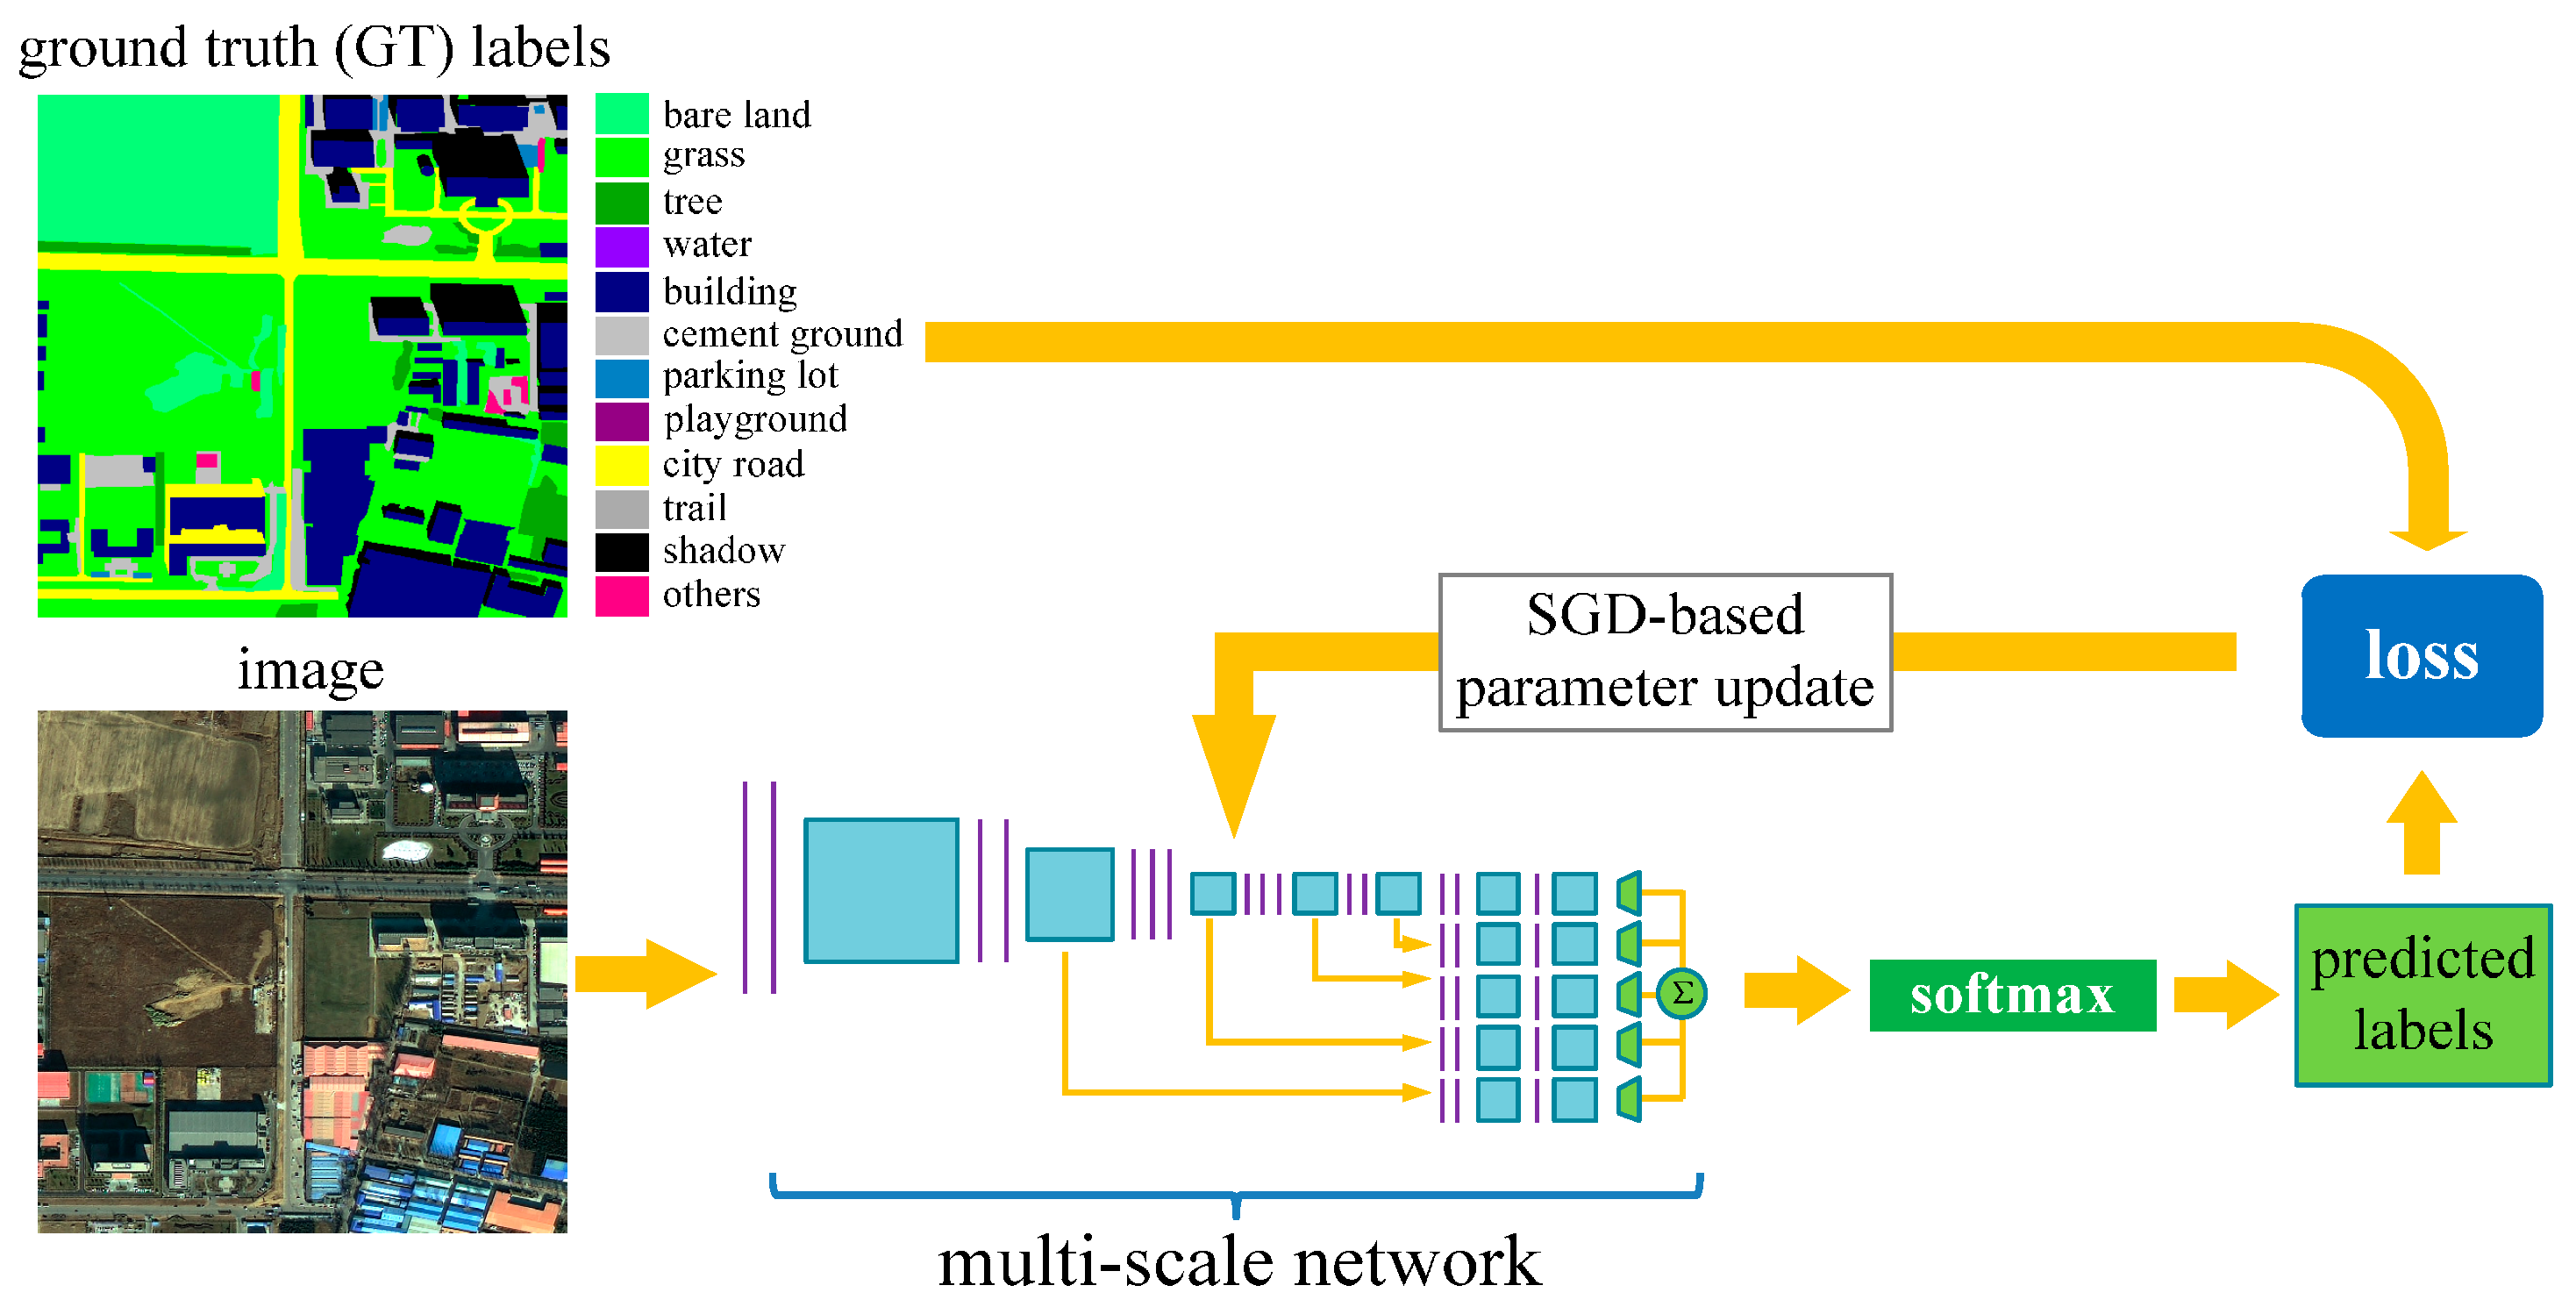 neural network research paper International journal on recent and innovation trends in computing and communication issn: 2321-8169 volume: 2 issue: 1 96 – 100.